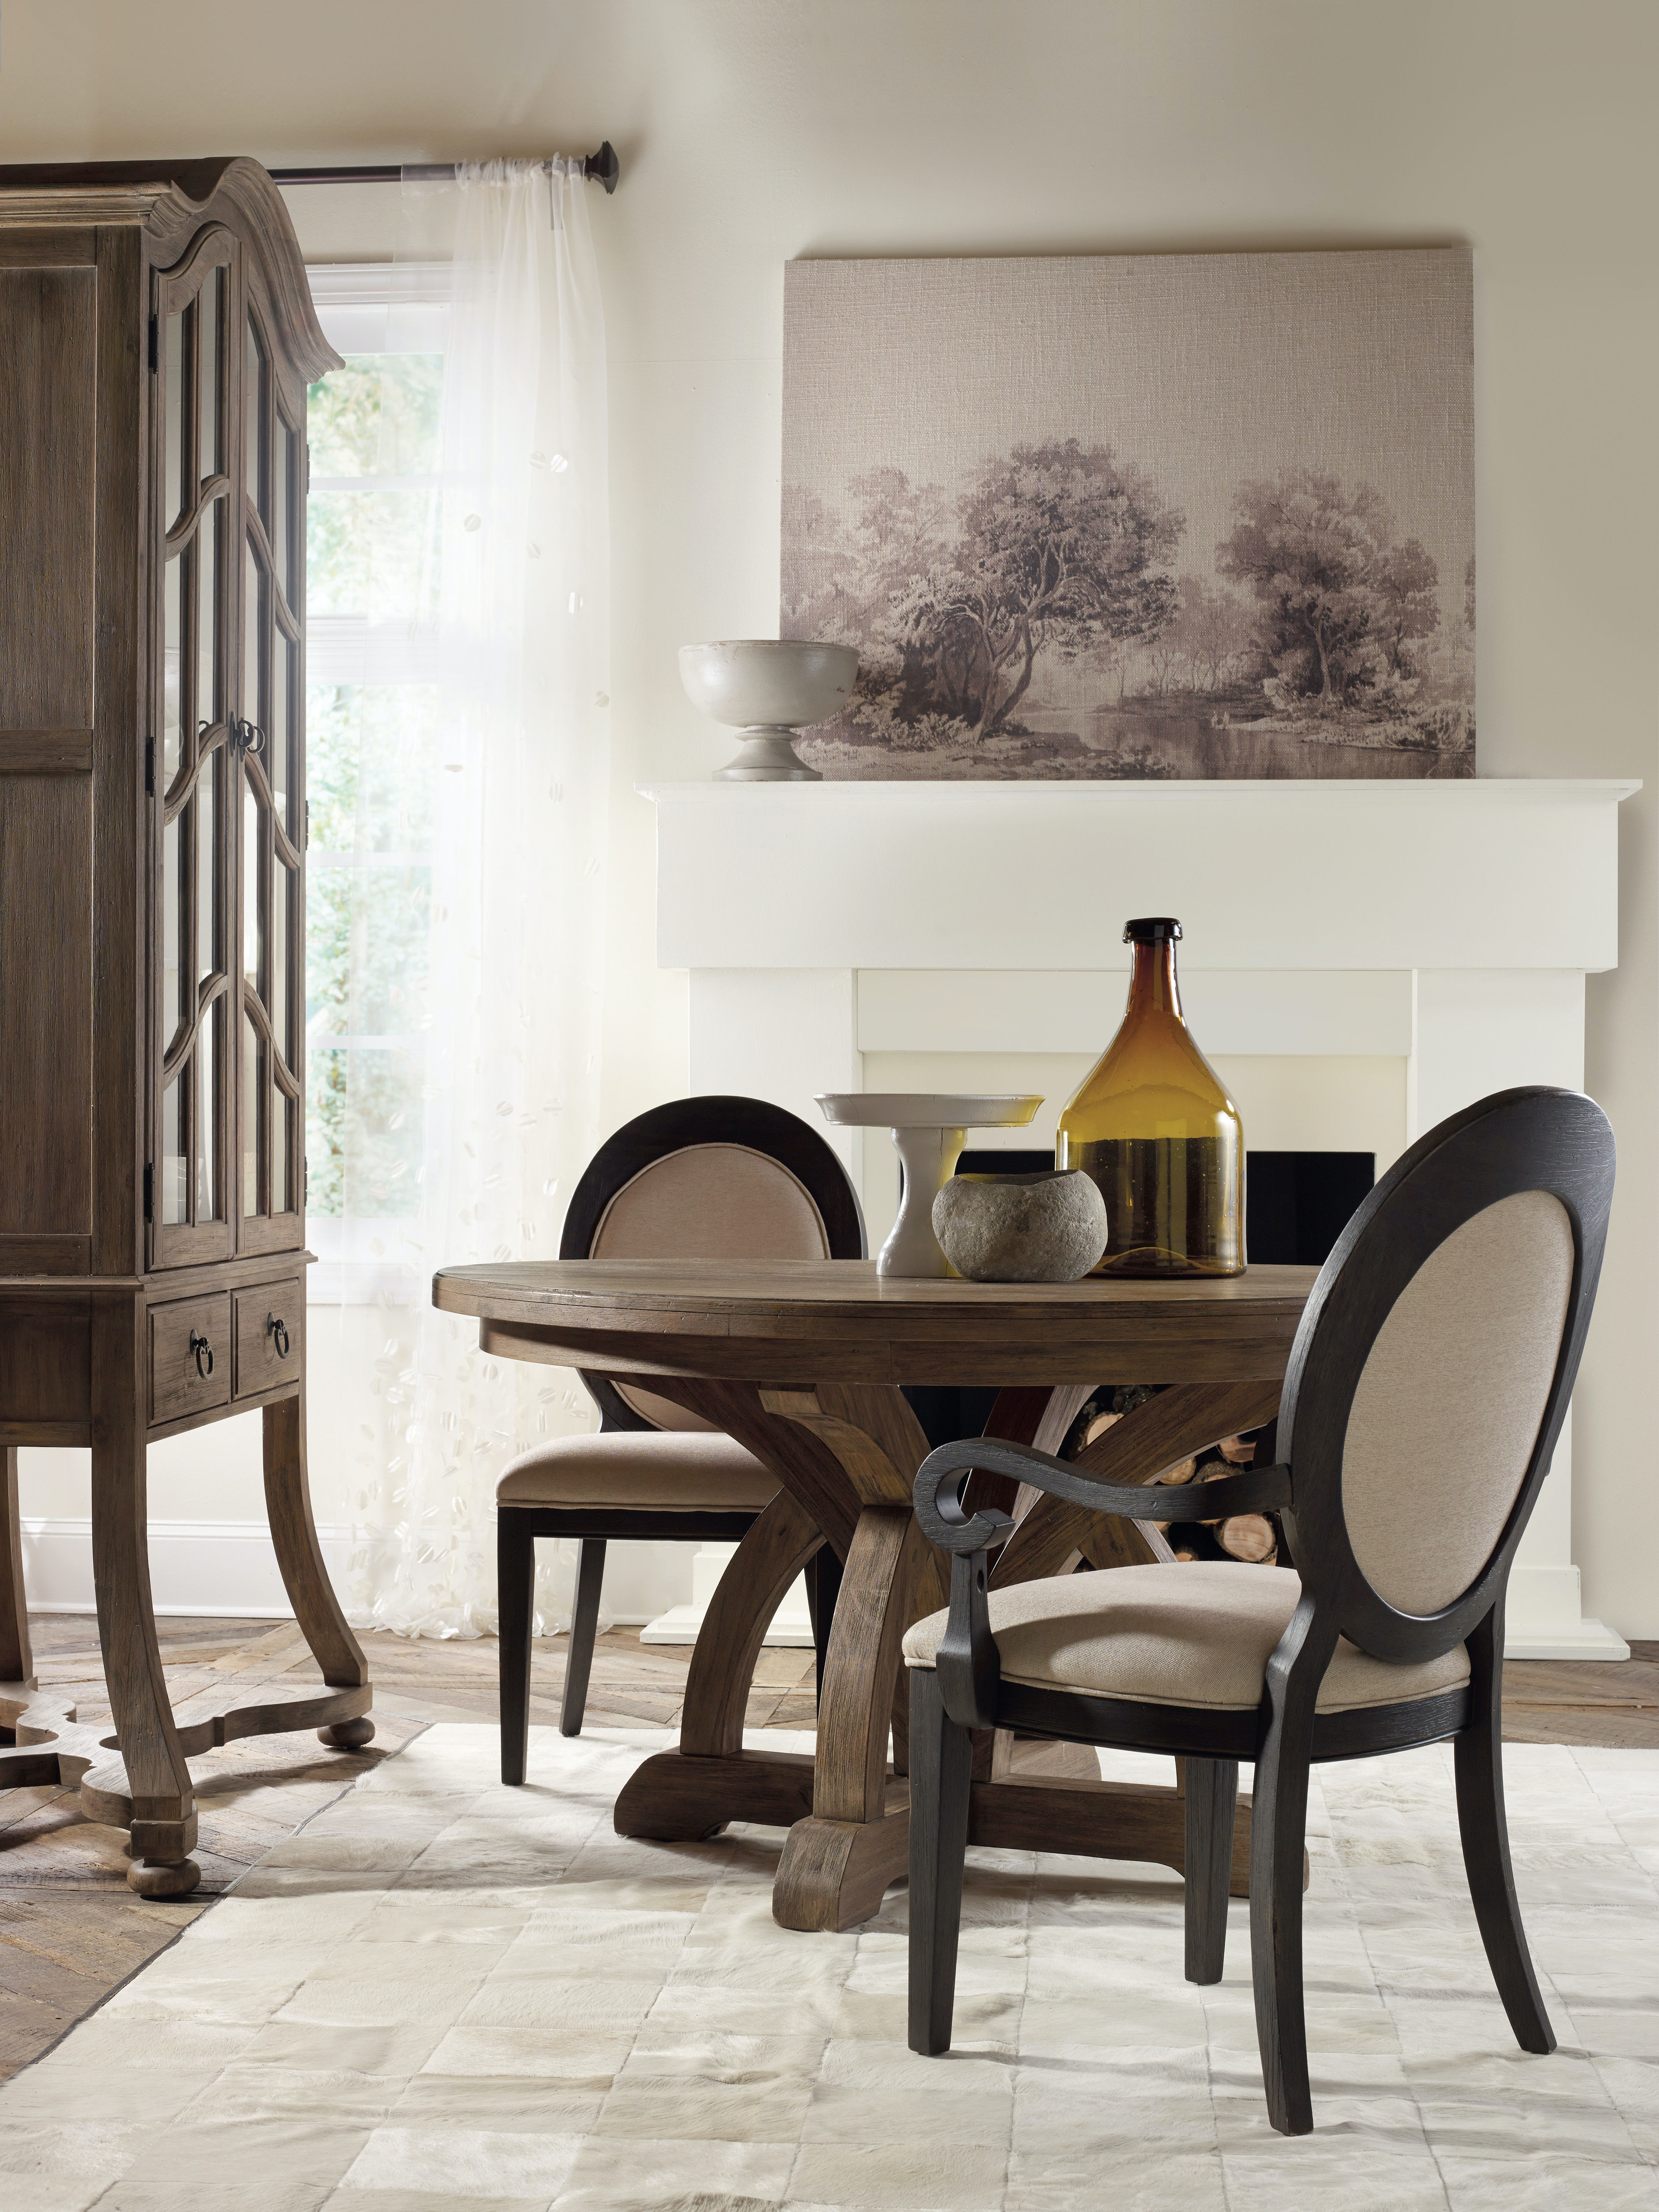 Hooker Furniture Dining Room Corsica Round Dining Table w118in